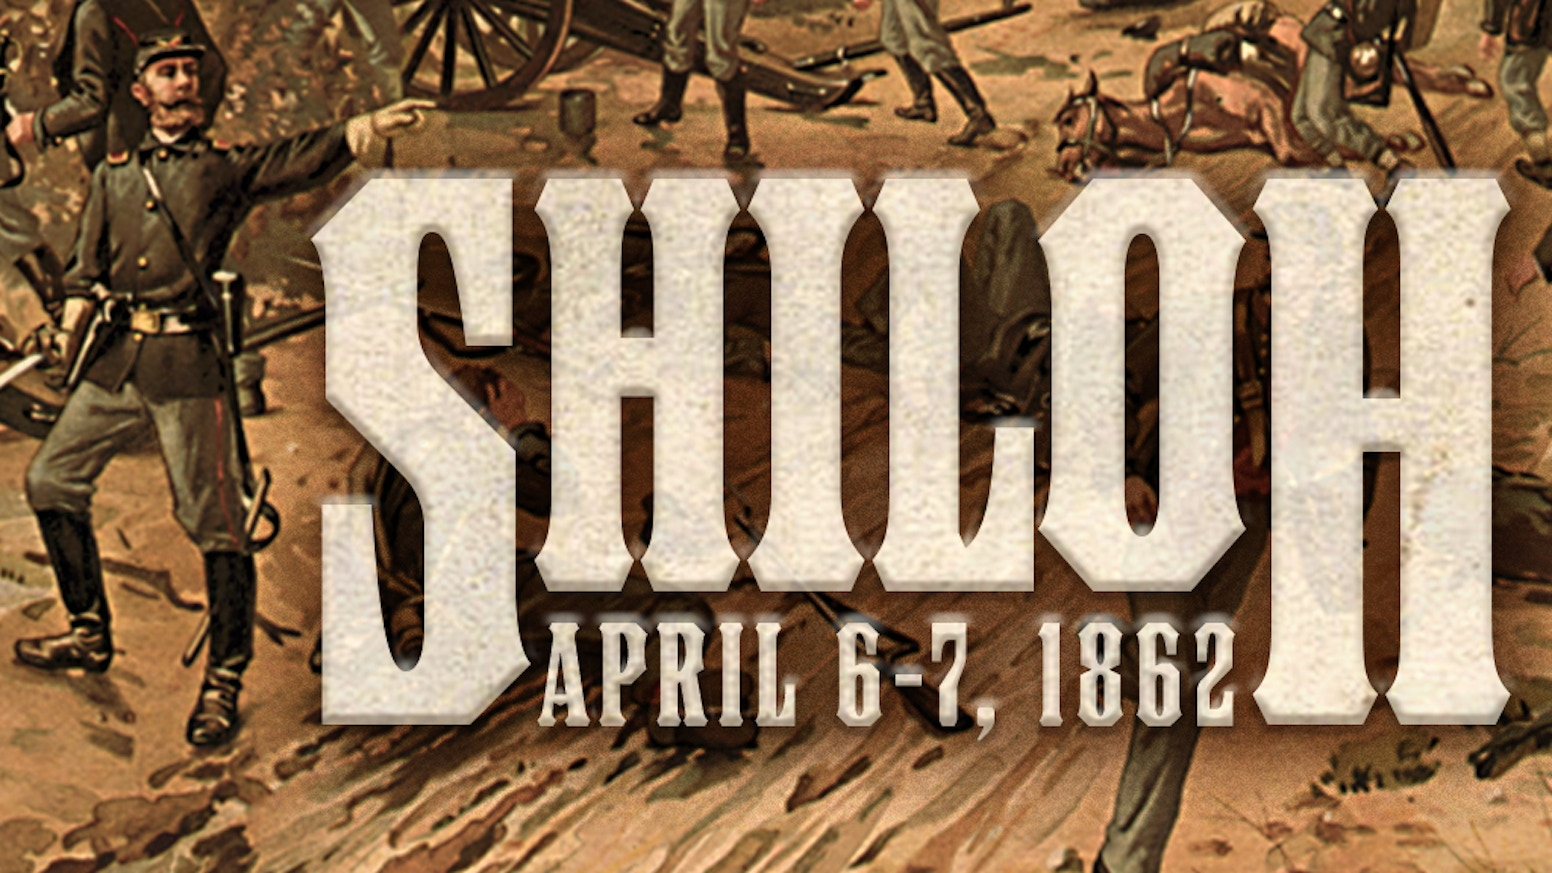 Volume II in the Civil War Brigade Battle Series. Refight the Battle of Shiloh with this classic hex and counter game. Playable in 3 hr